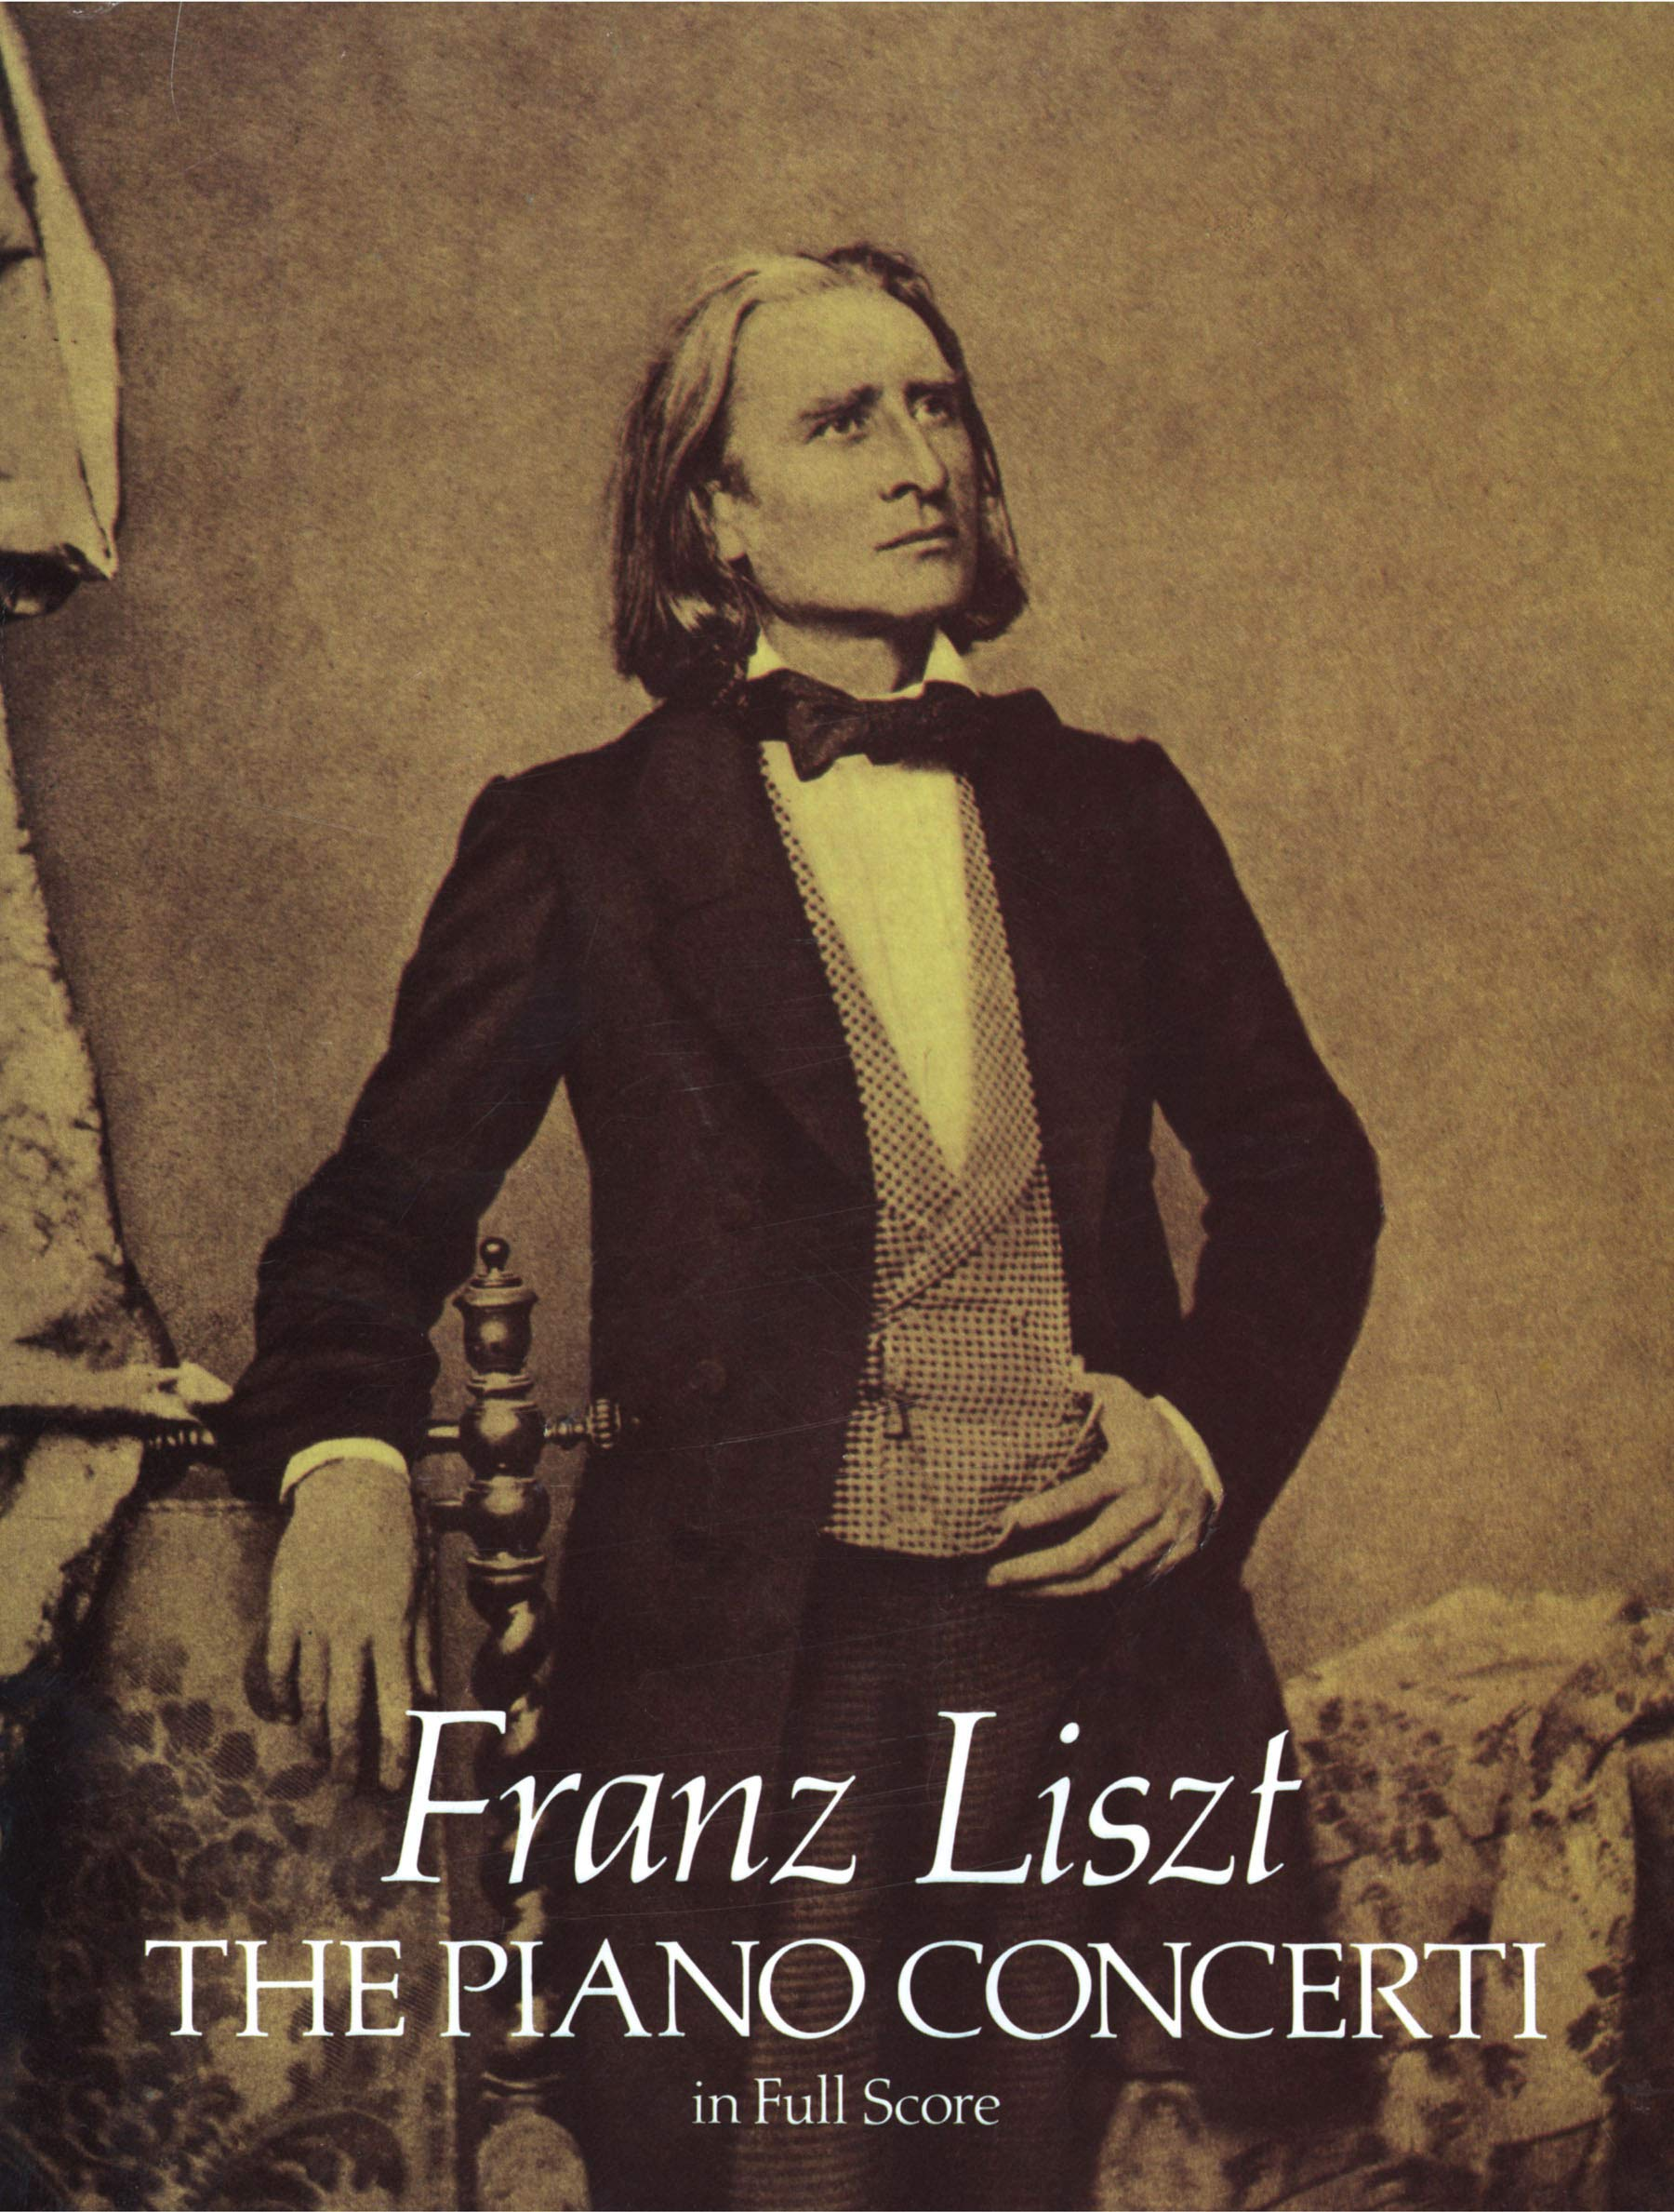 The Piano Concerti in Full Score (Dover Music Scores): Franz Liszt:  9780486252216: Amazon.com: Books